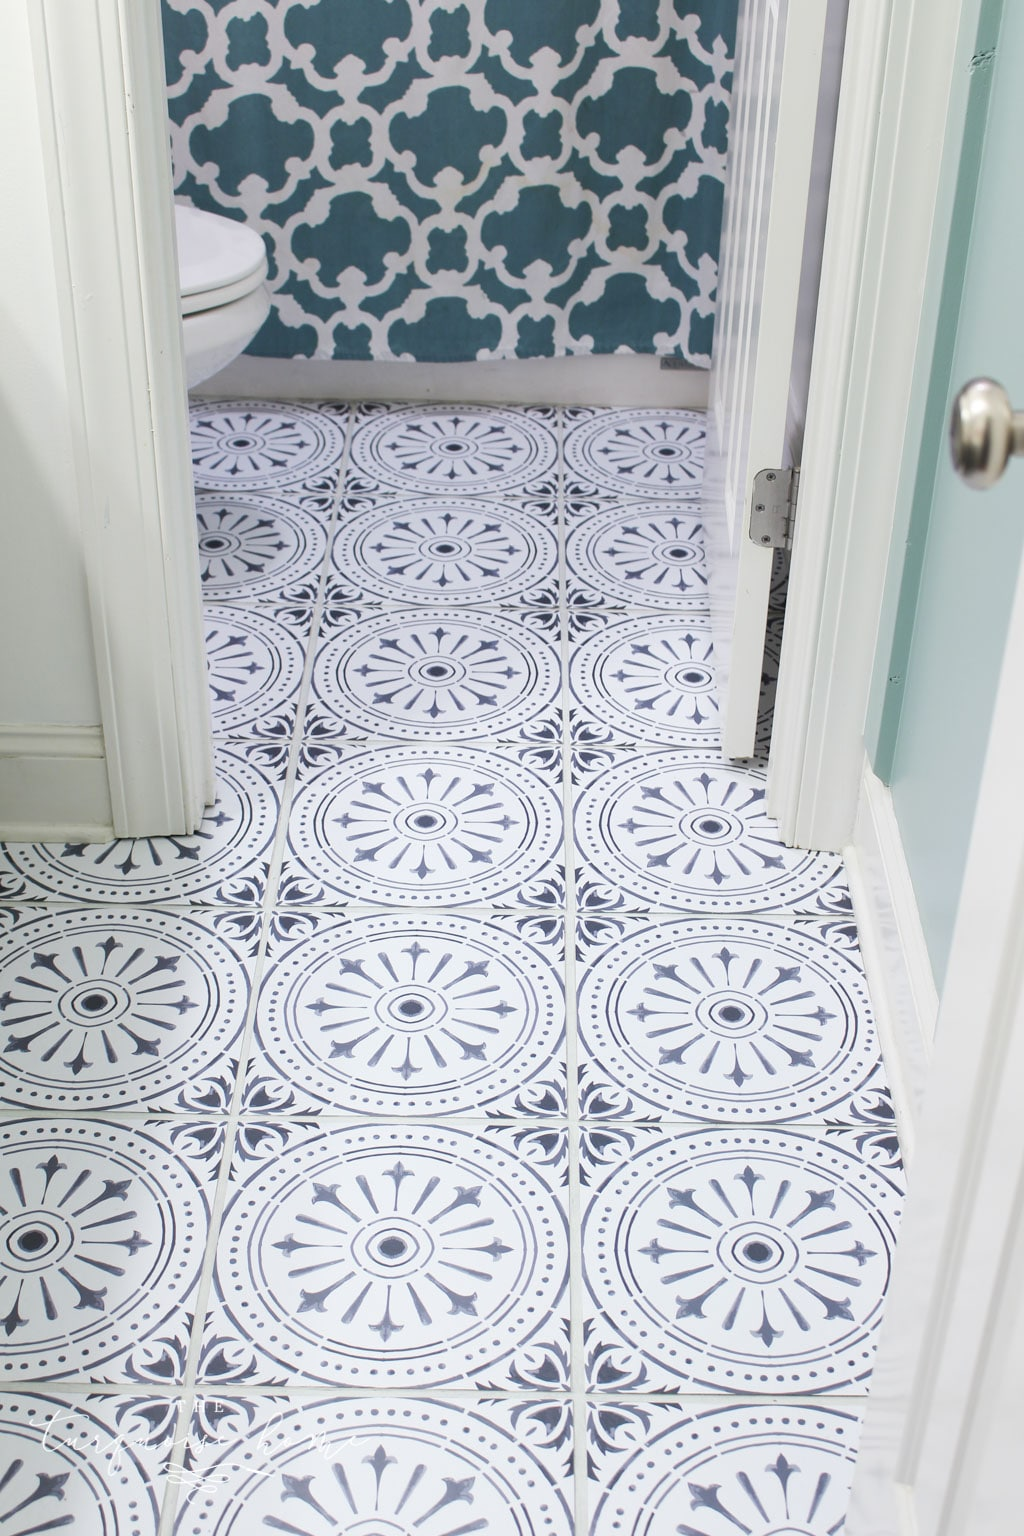 DIY Peel and Stick Vinyl Tile Flooring --> gorgeous cheap DIY flooring option